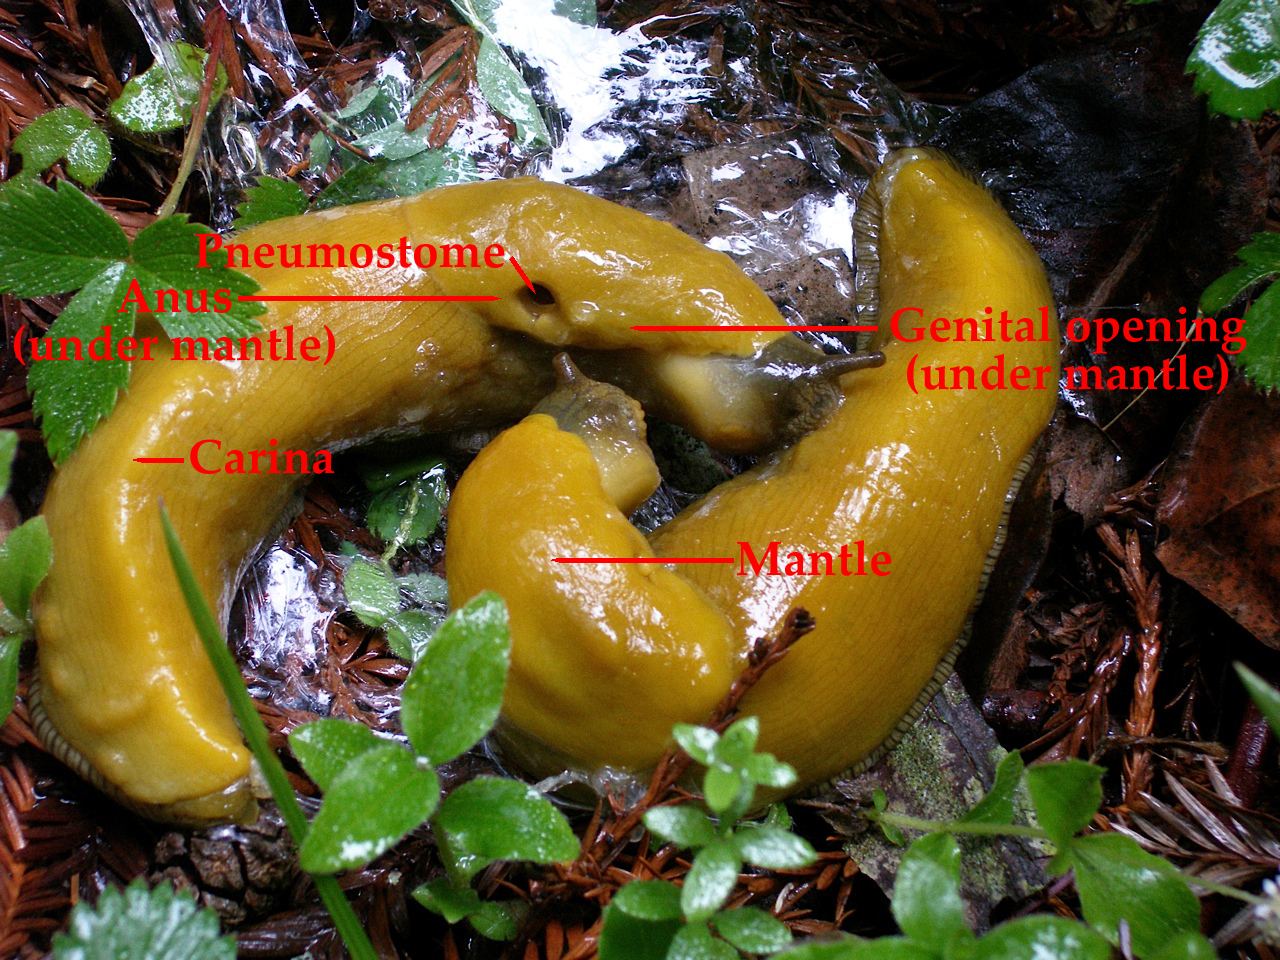 Banana slug morphology.